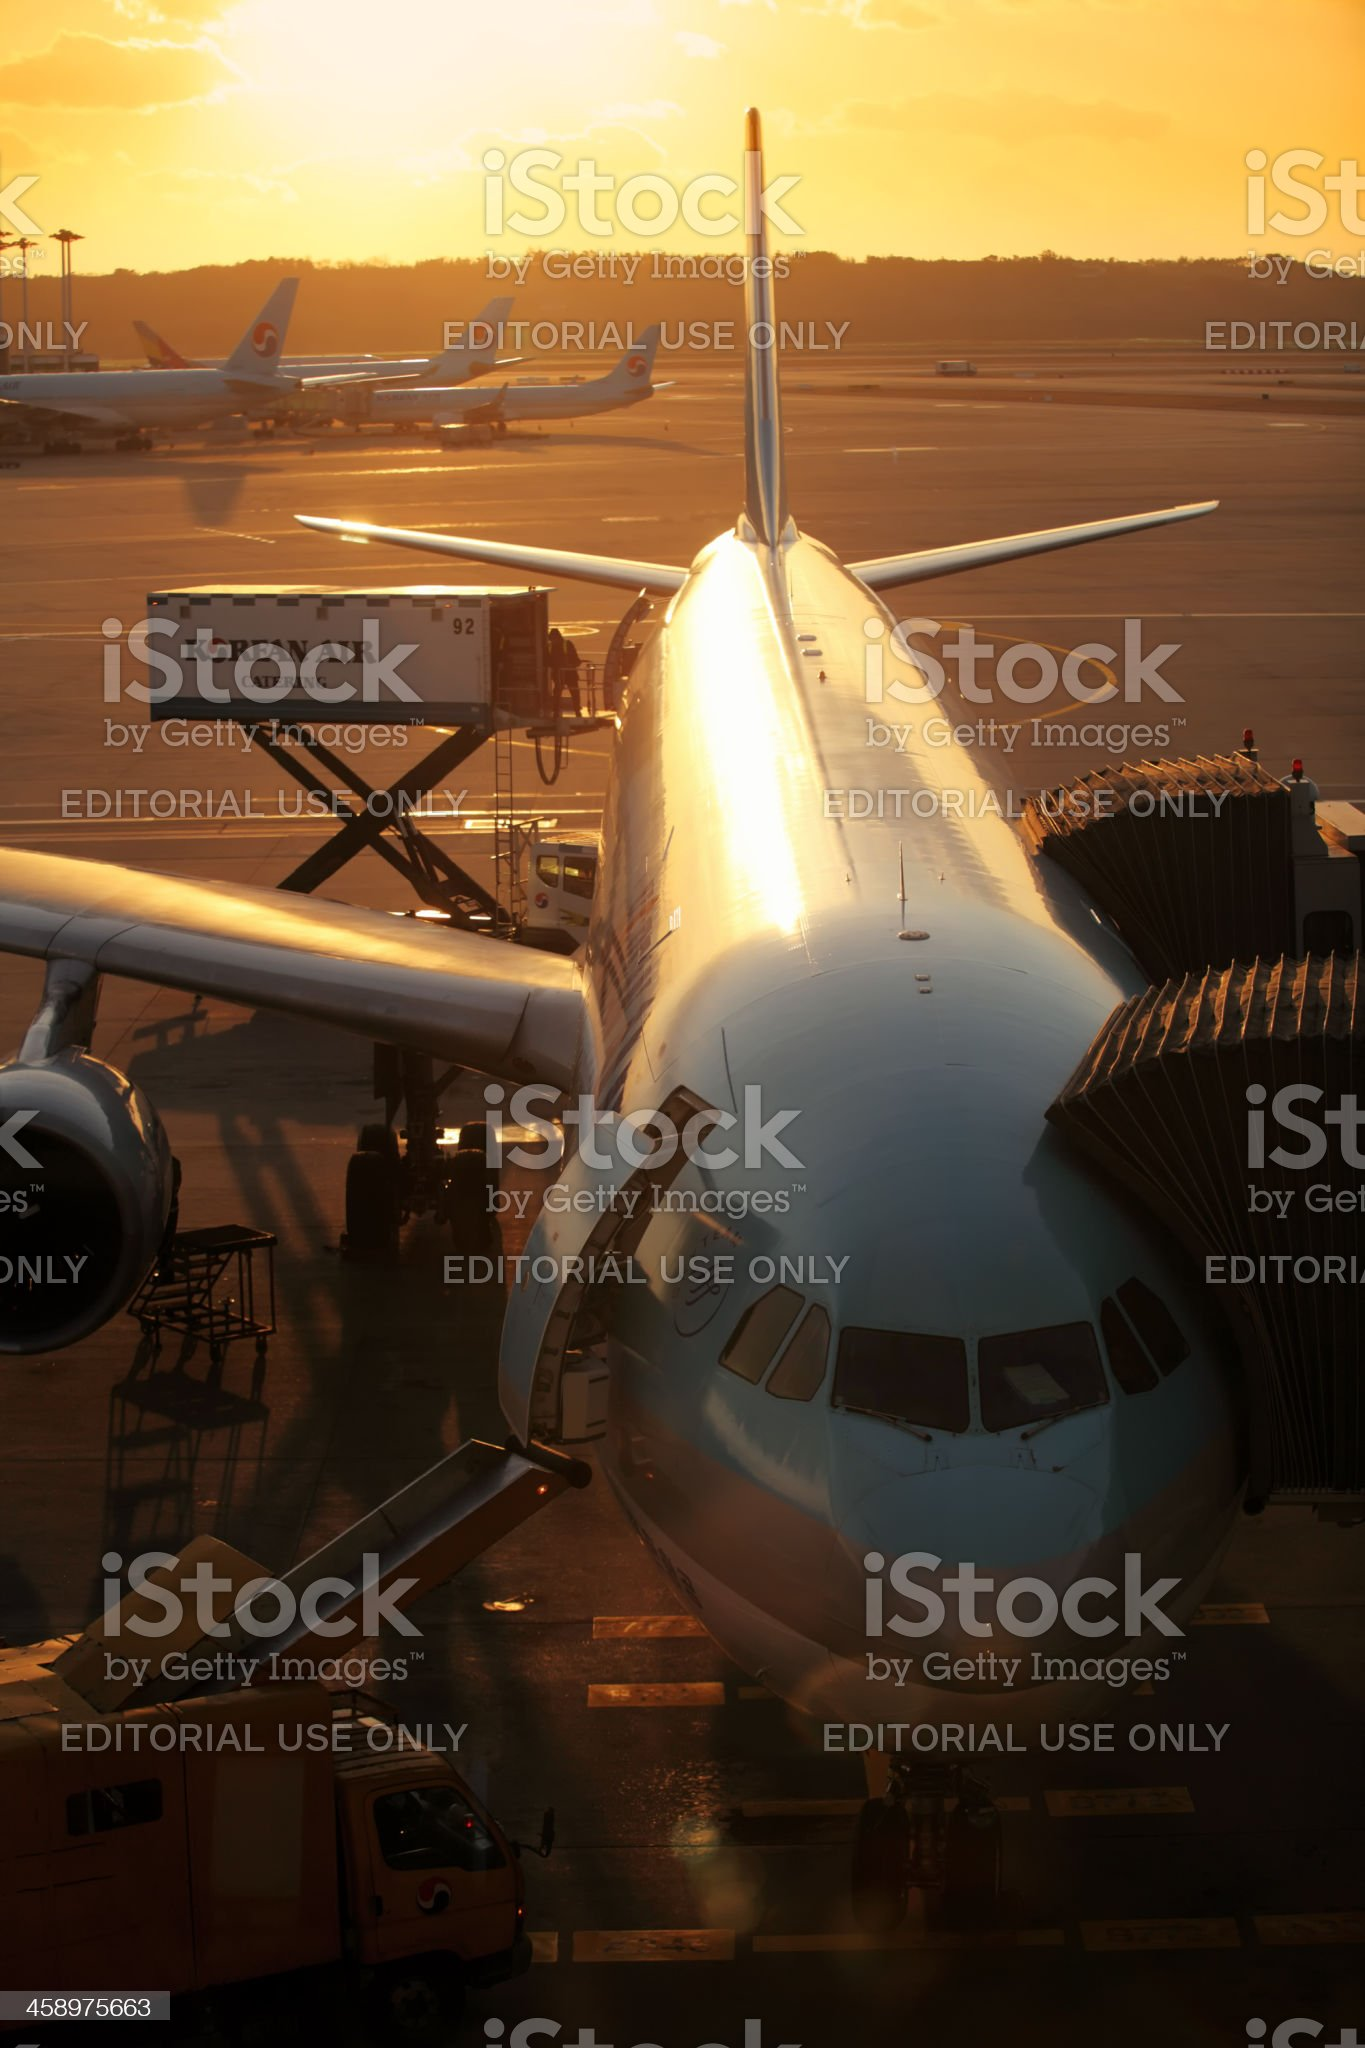 Korean Air jet airplanes at Seoul Incheon International Airport royalty-free stock photo